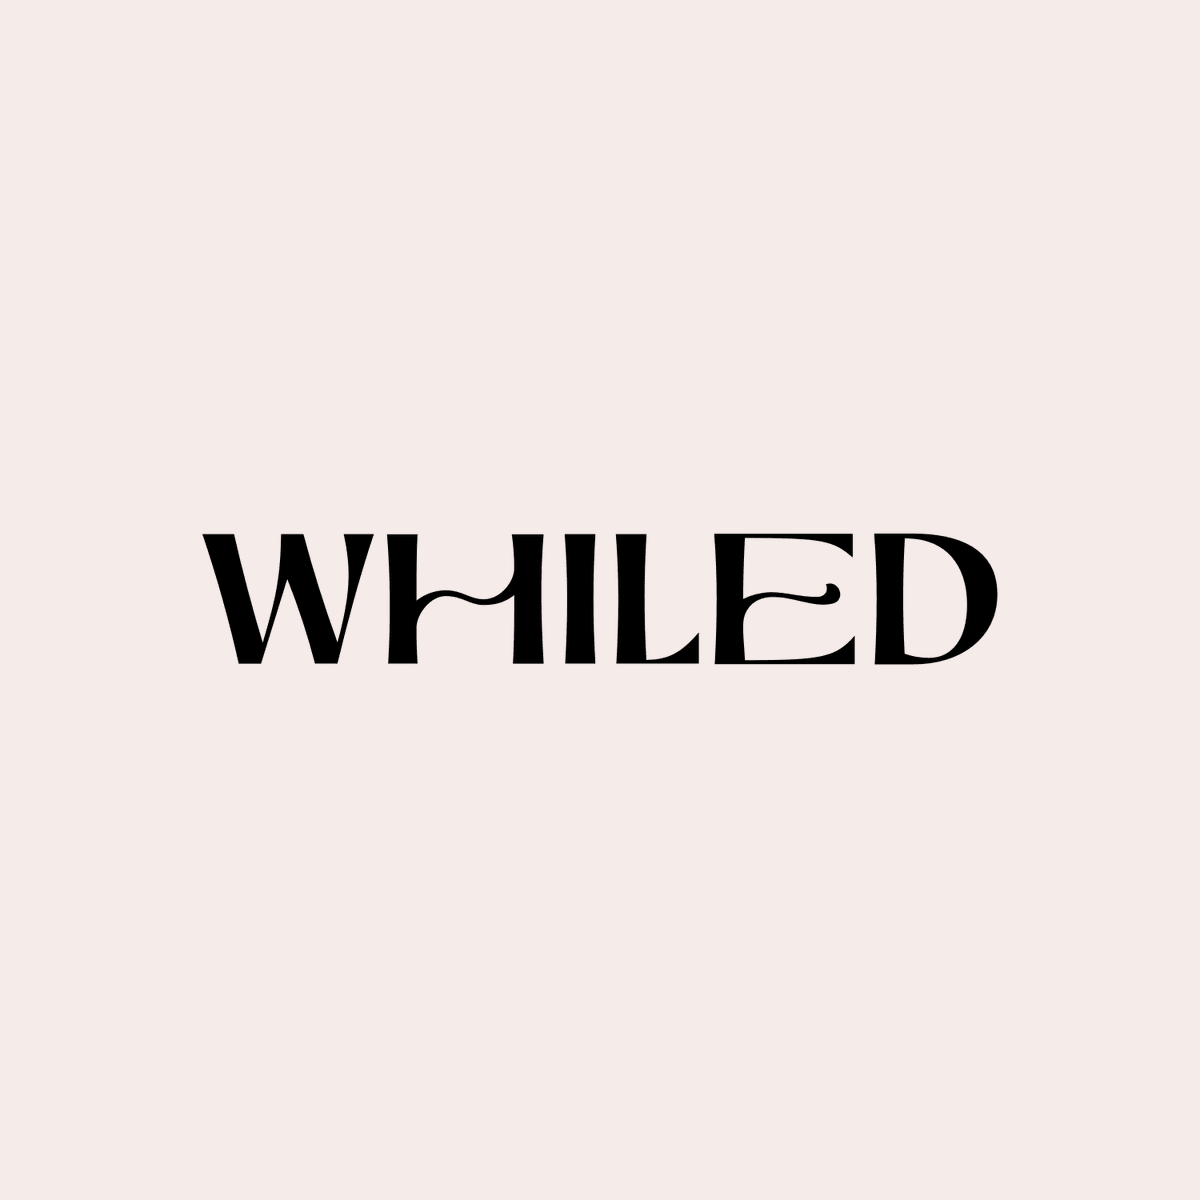 Whiled: A Brand and a Mantra